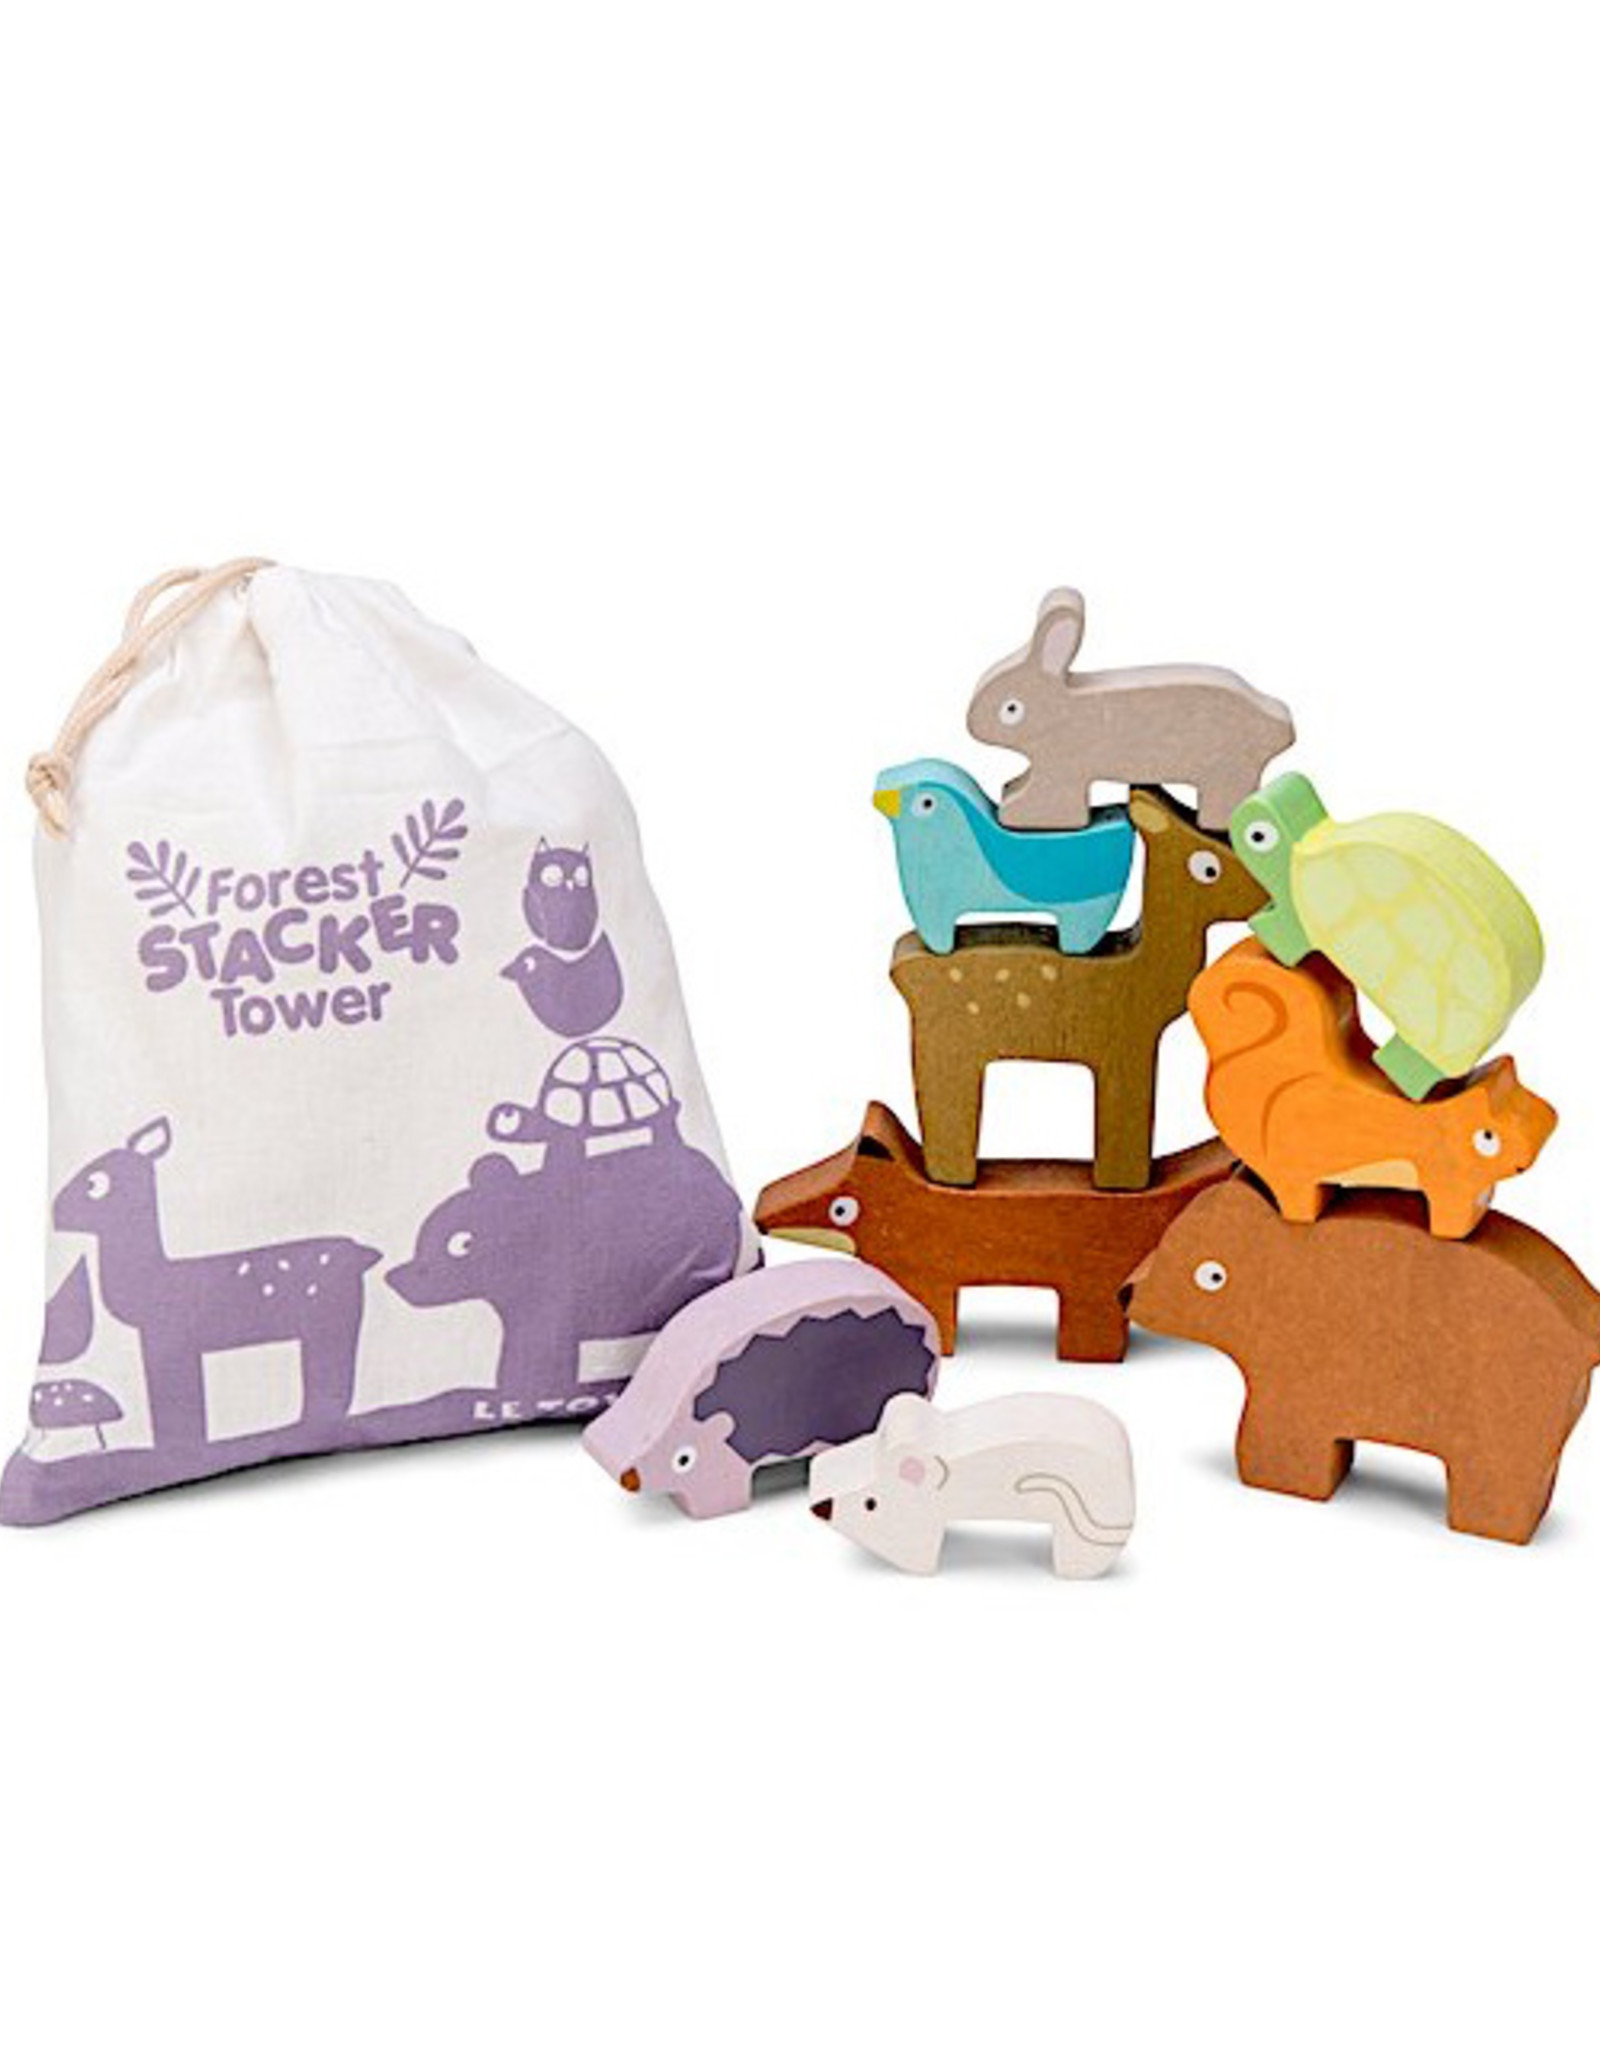 Le Toy Van Forest Stacker Tower & Bag